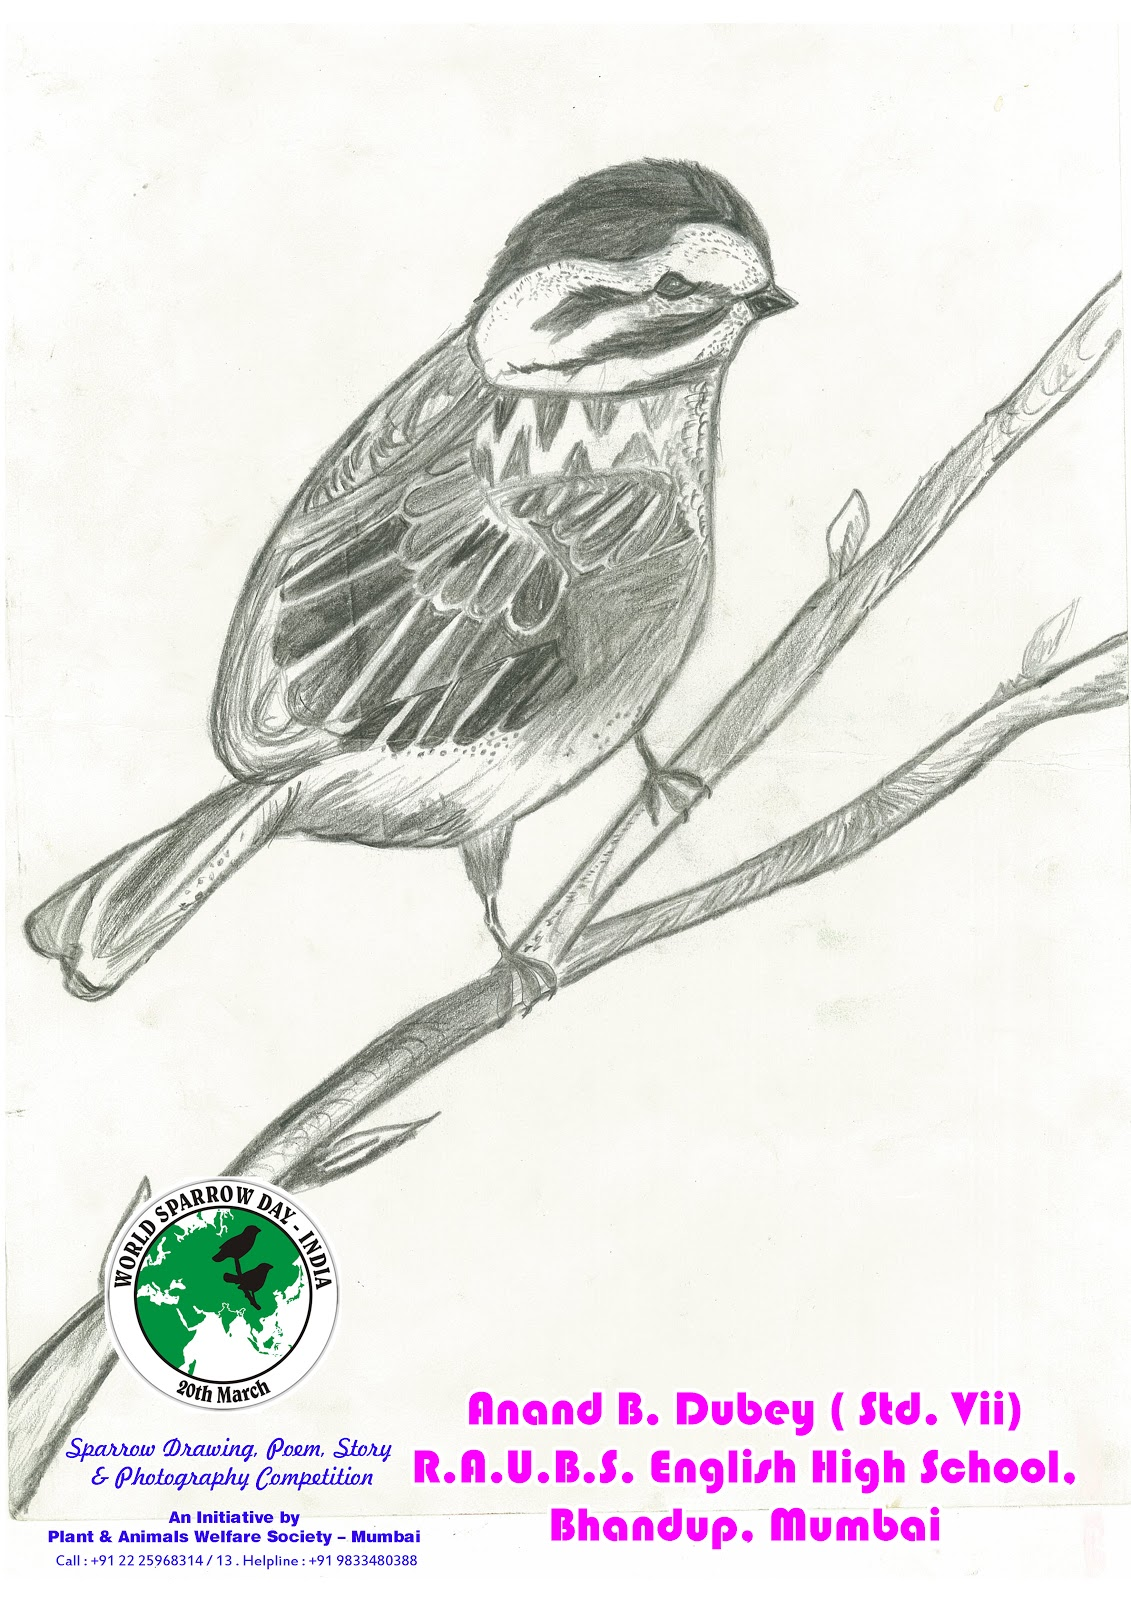 World Sparrow Day - India 2013 Competition Update